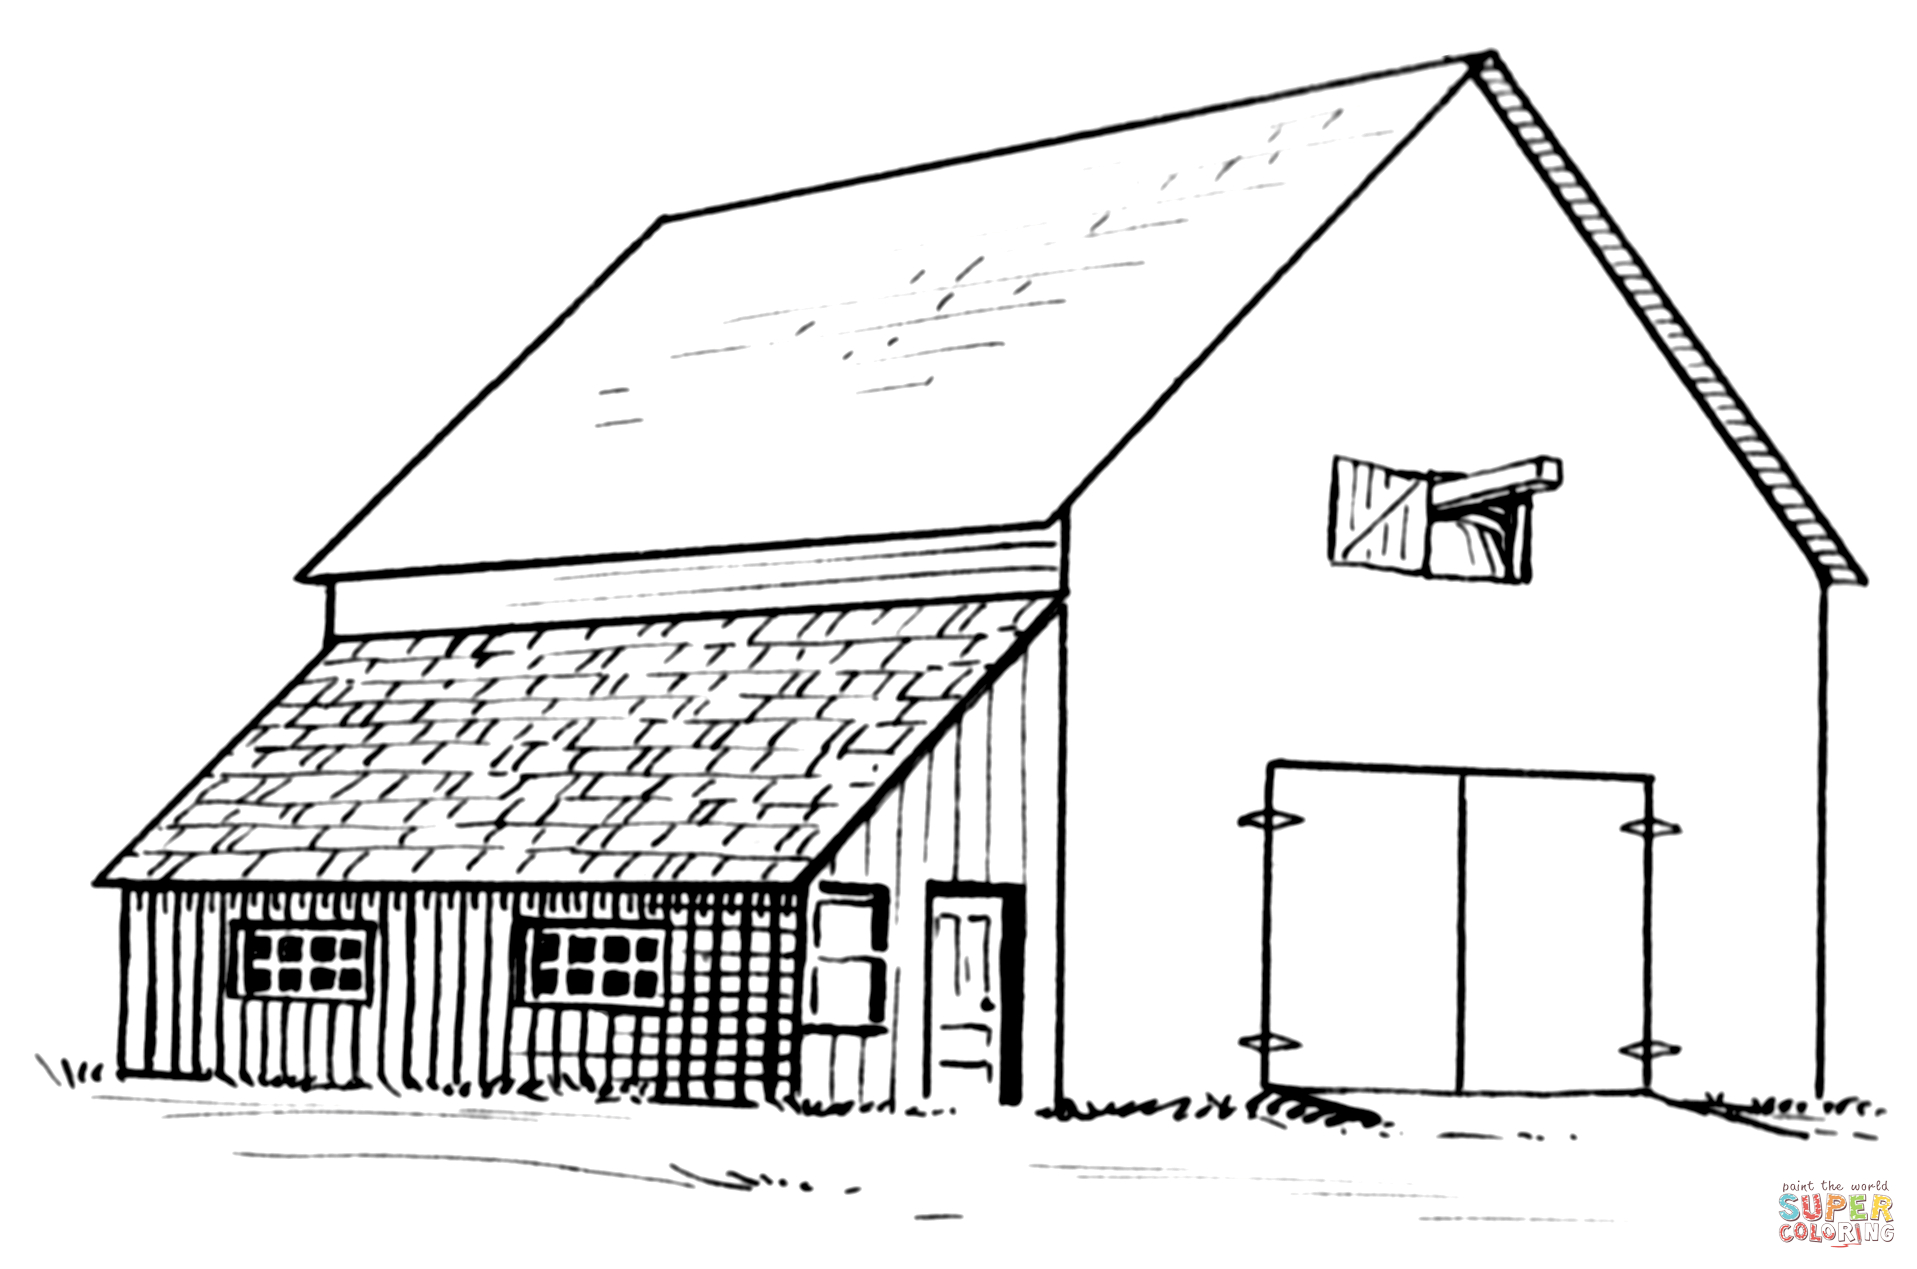 Barn And Lean-To Coloring Page | Free Printable Coloring Pages - Free Printable Barn Coloring Pages